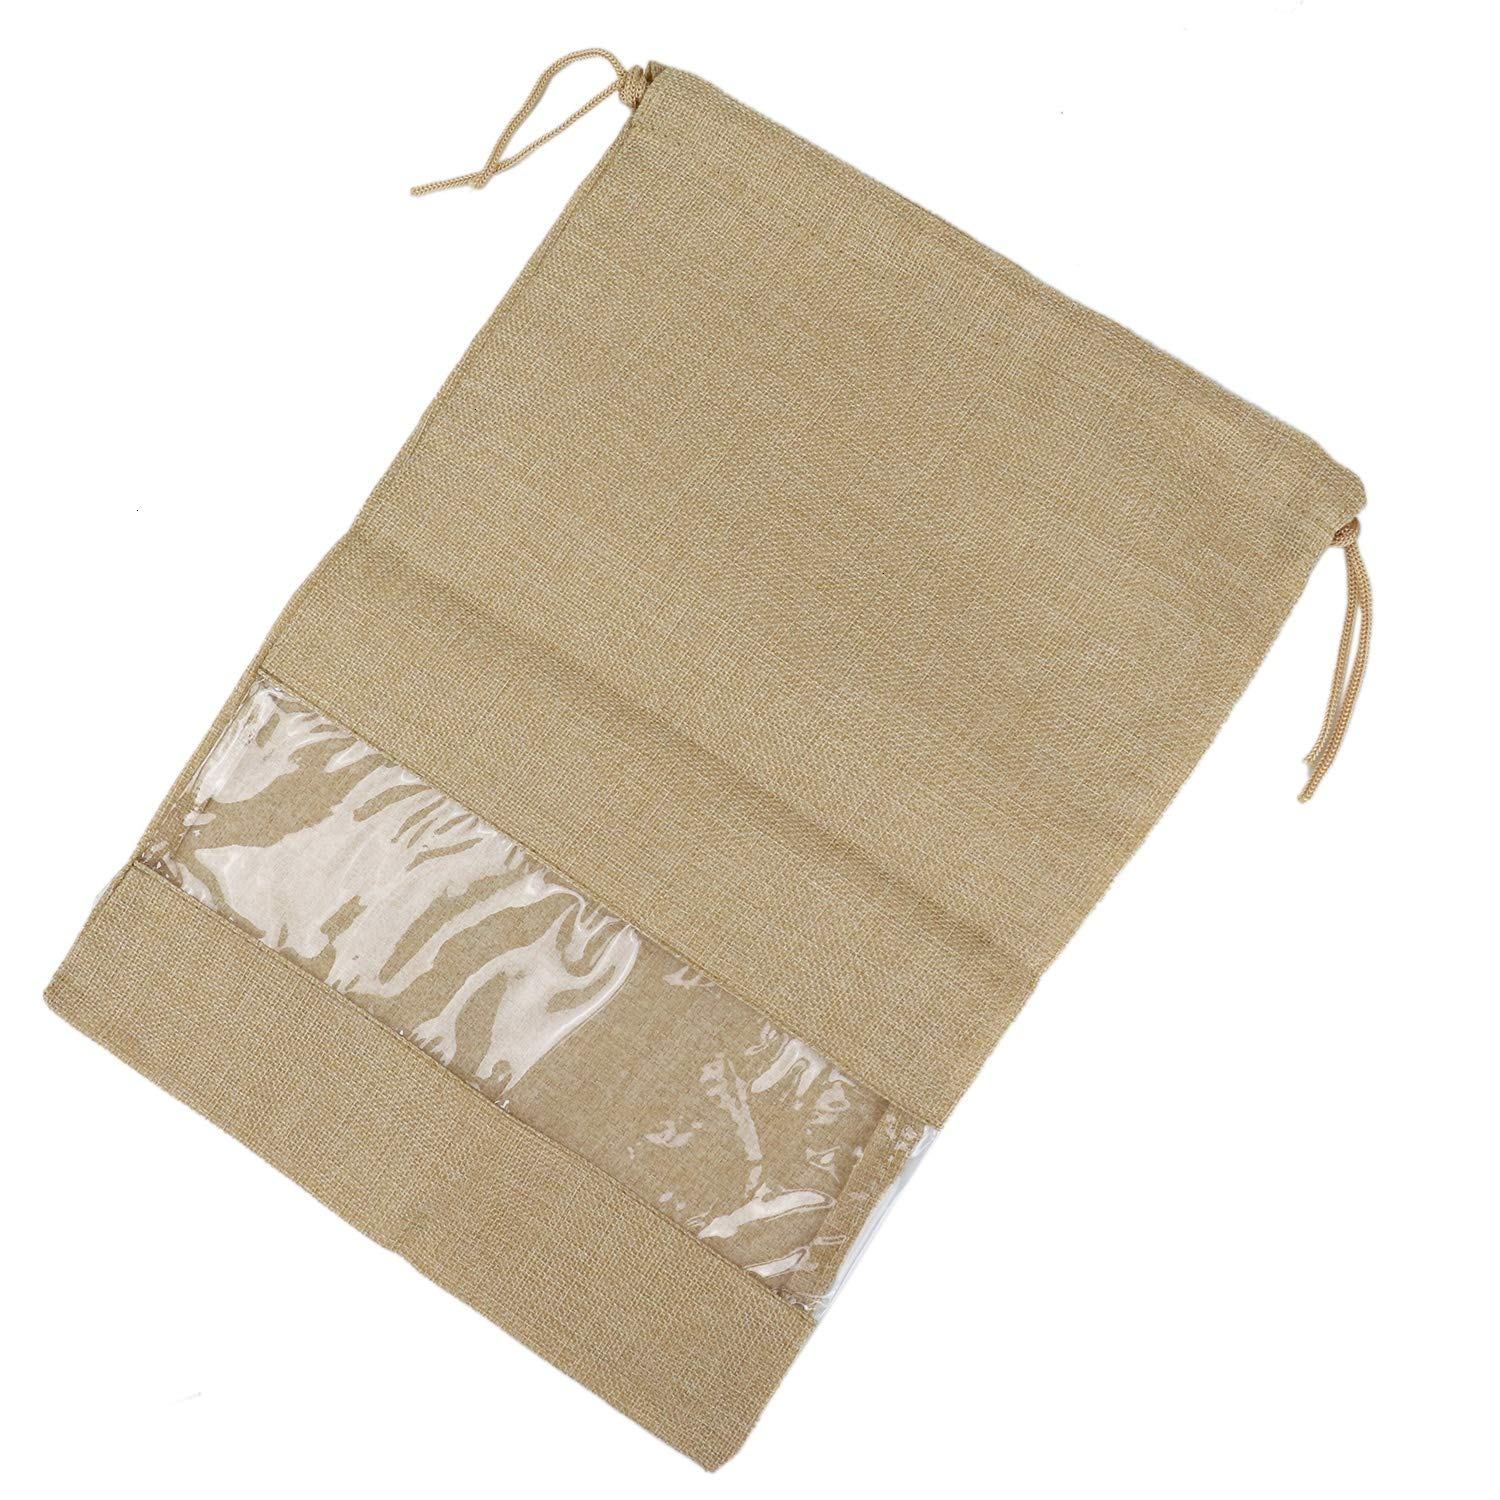 HUELE 4Pcs Shoe Storage Bags with Drawstring For Travel